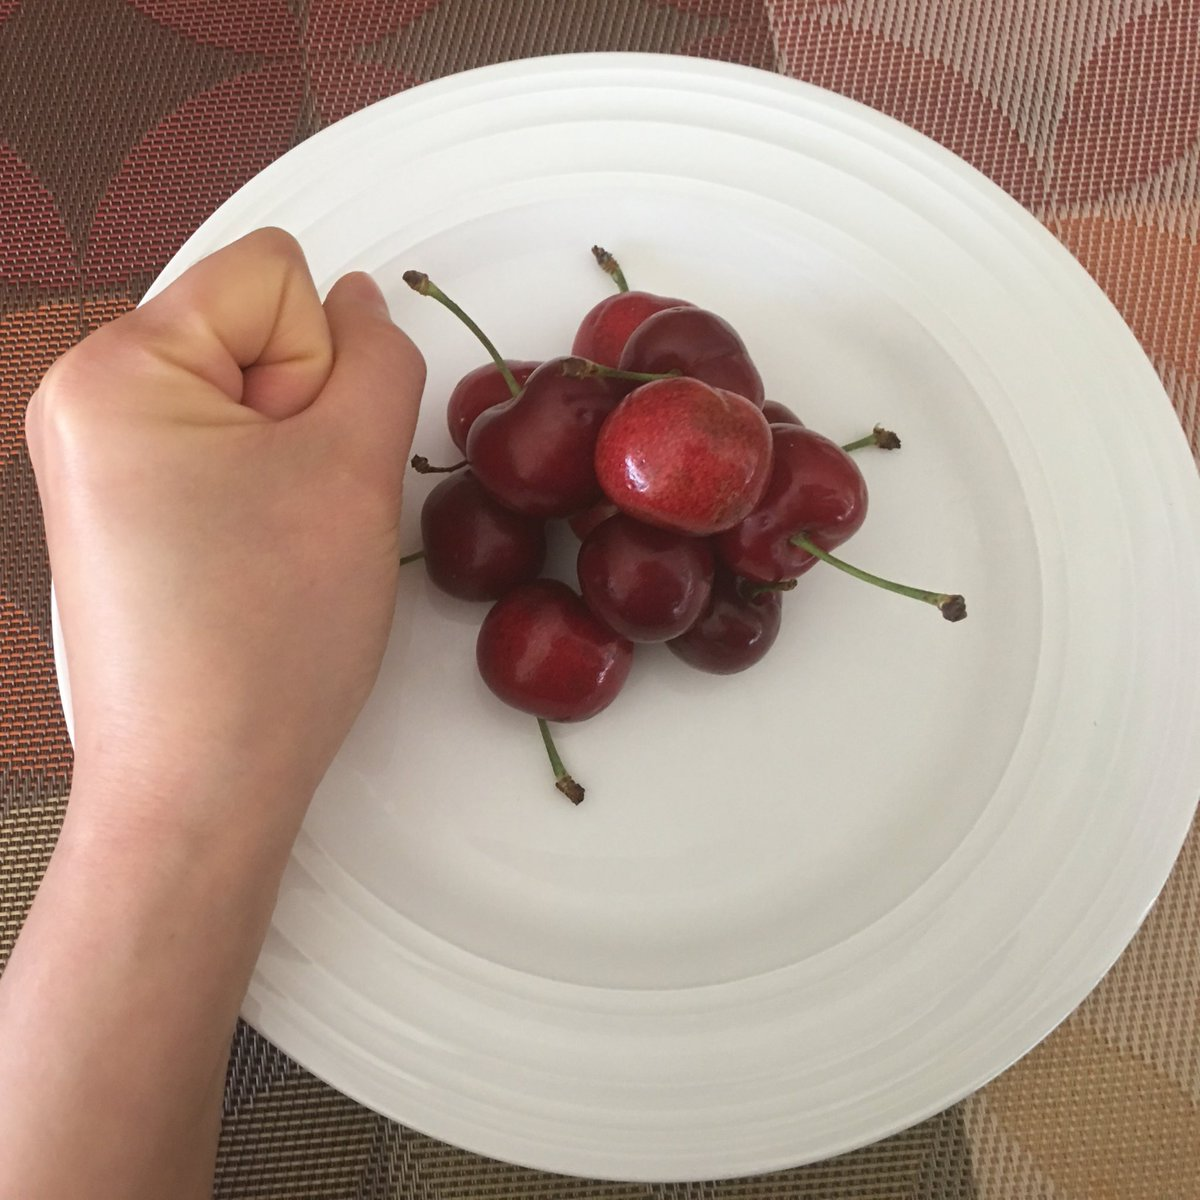 Image result for cherries in fist